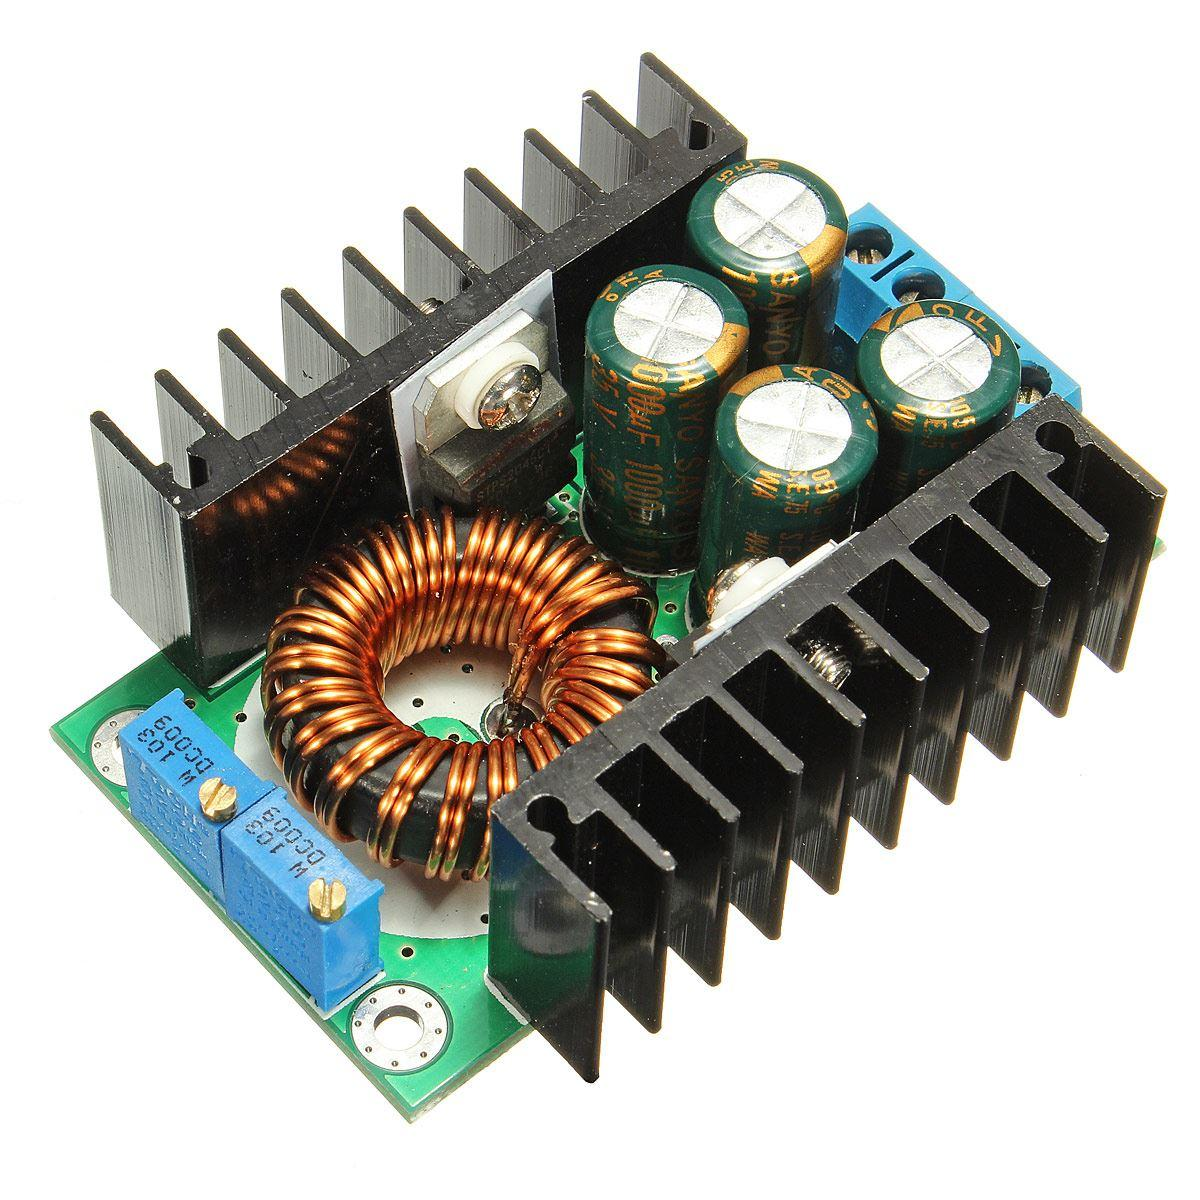 12A 300W 7-32V to 0.8-28V DC-DC CC CV Buck Converter Step-down Power Module WT